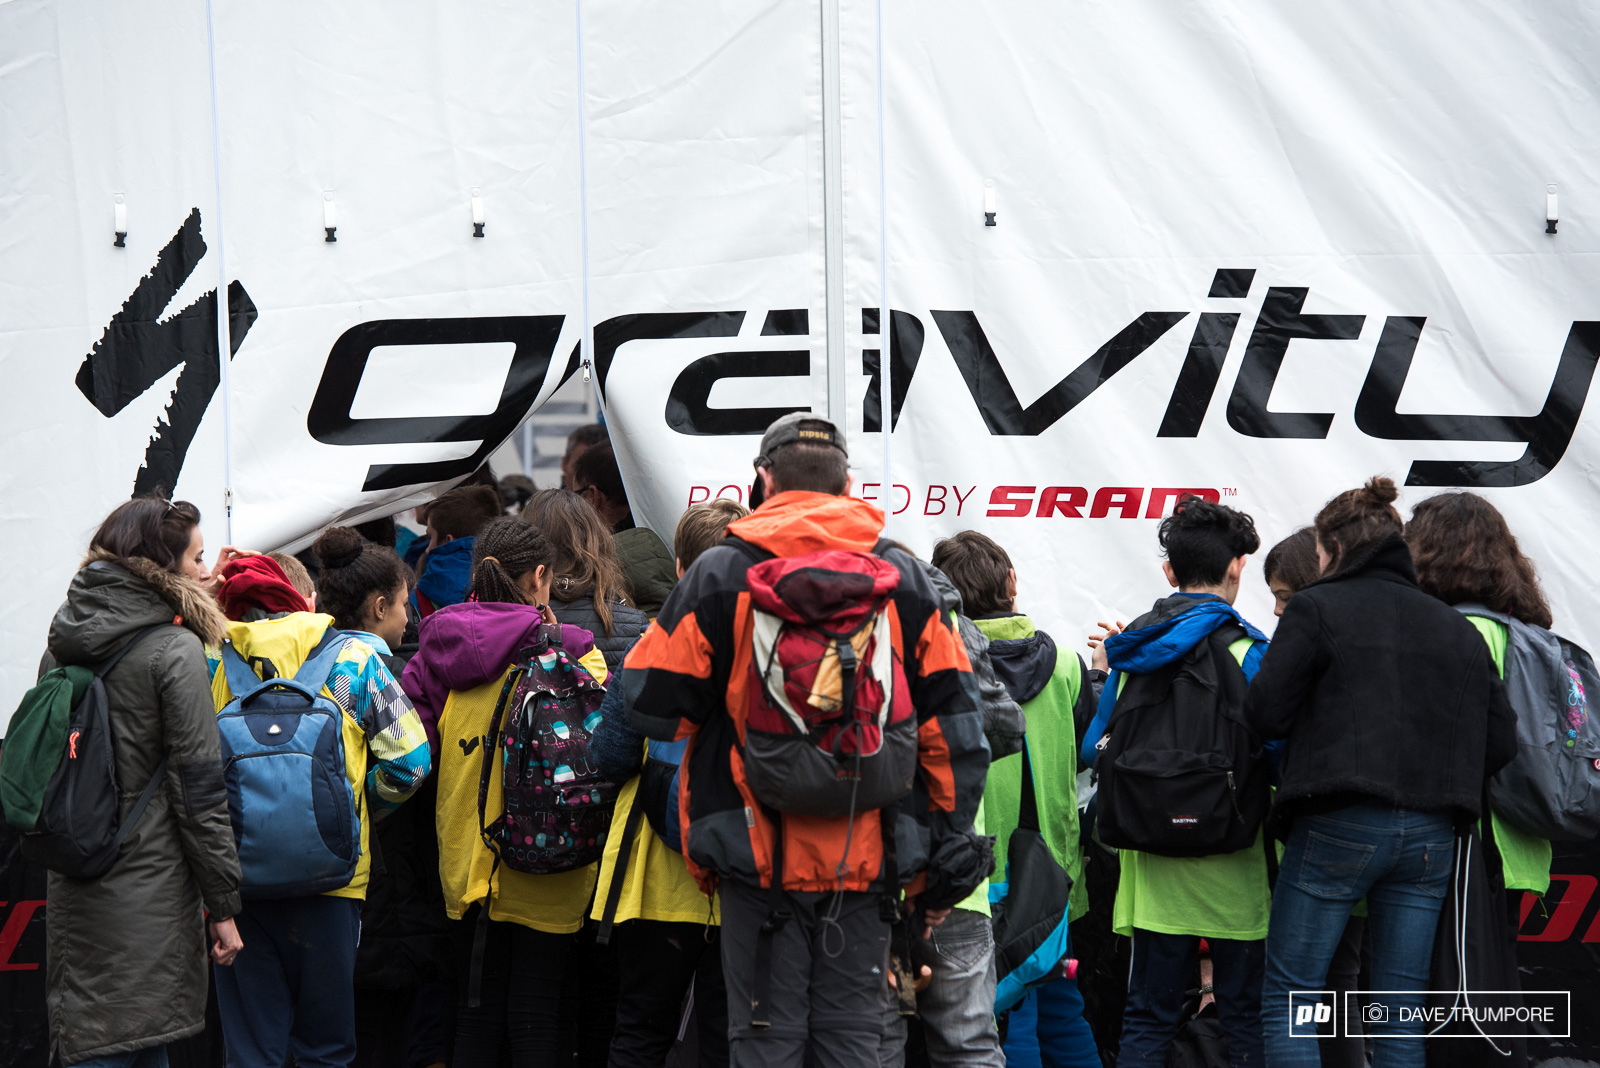 Standing room only in the Specialized gravity pits after Loic took top honors today.